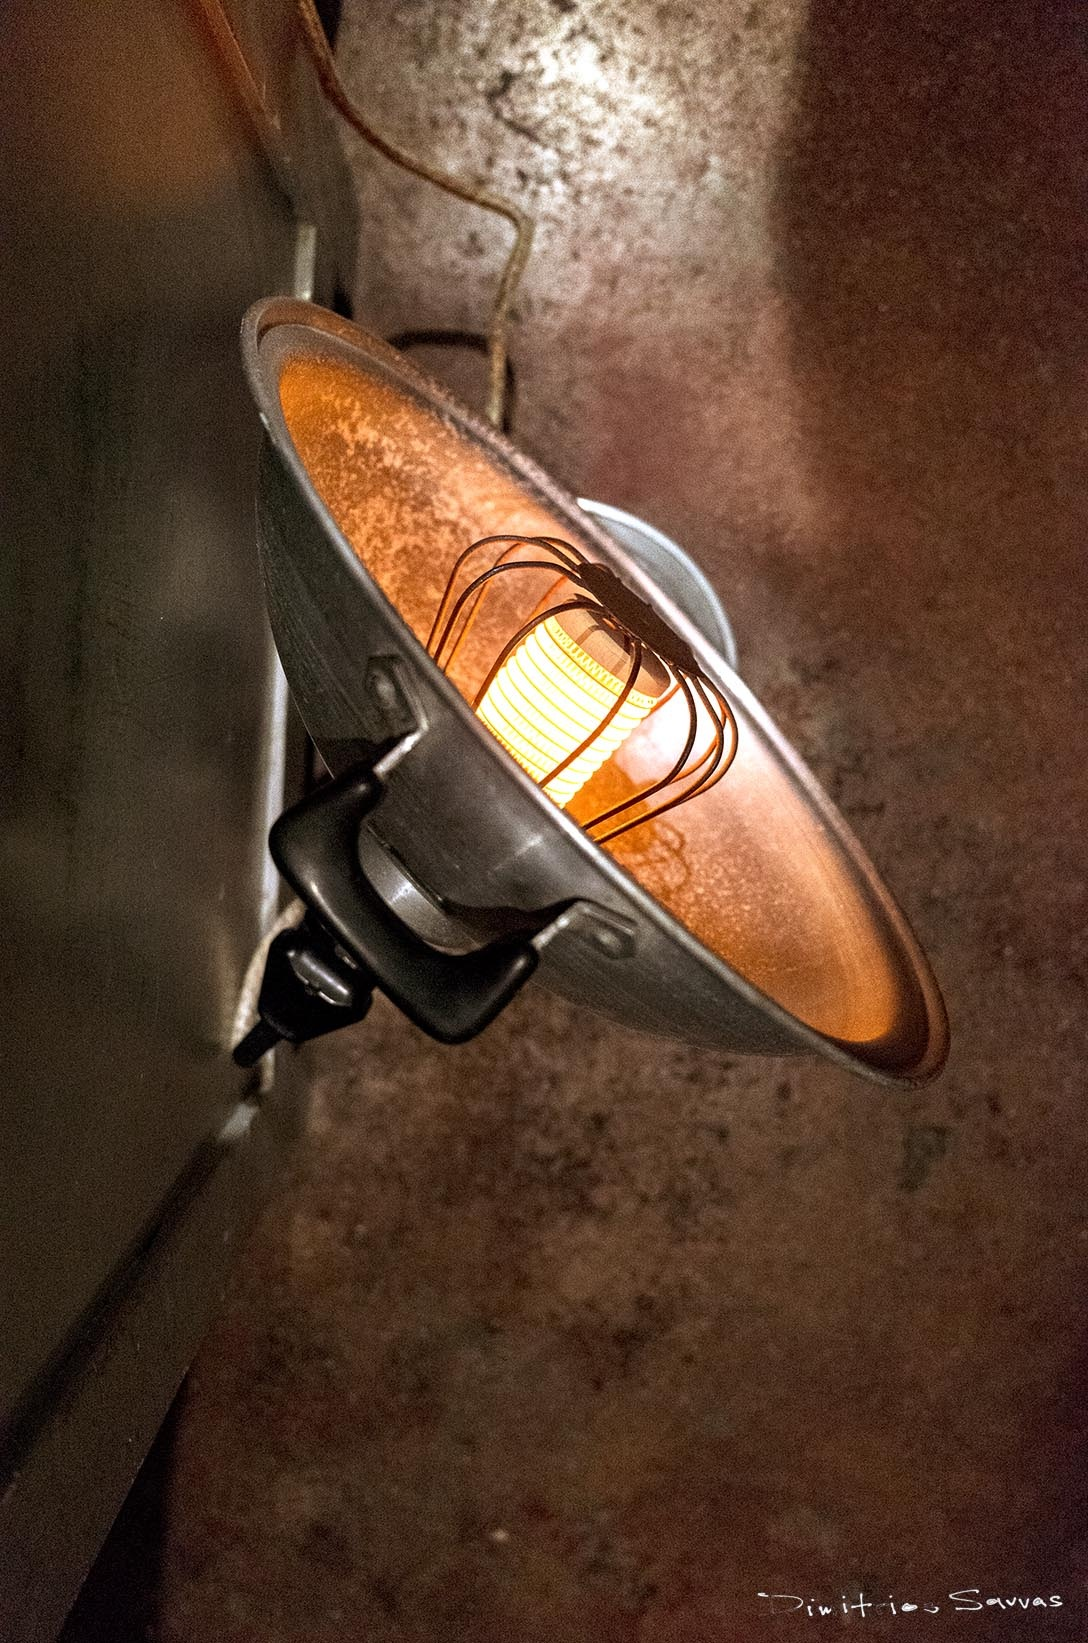 1960's electric reflector heater by dimitrissavvas